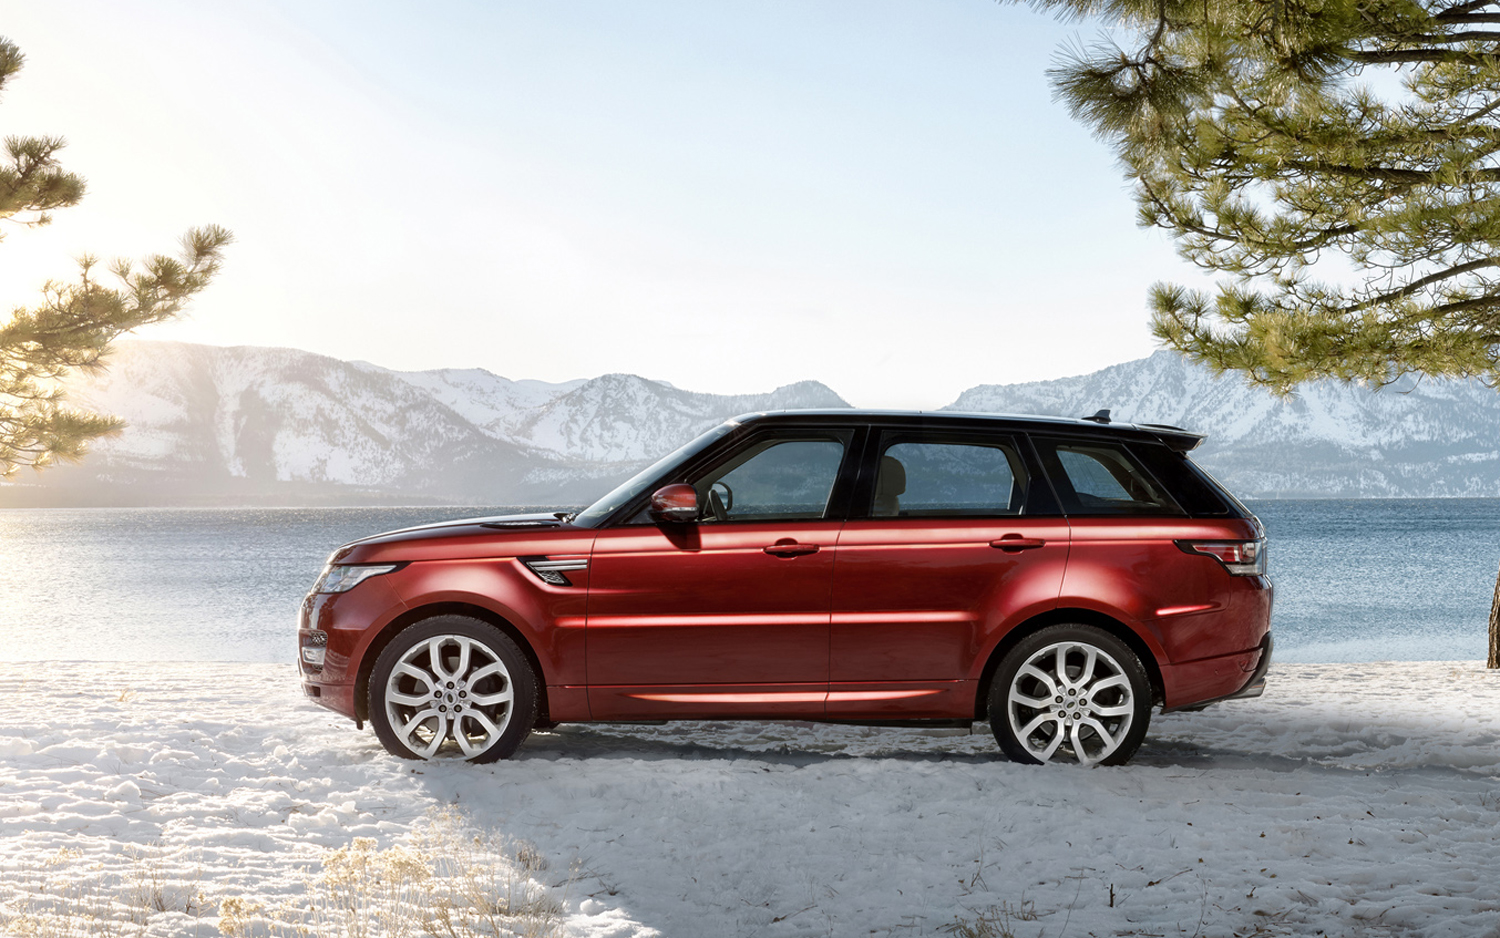 daniel craig drives the 2014 range rover sport new cars reviews. Black Bedroom Furniture Sets. Home Design Ideas